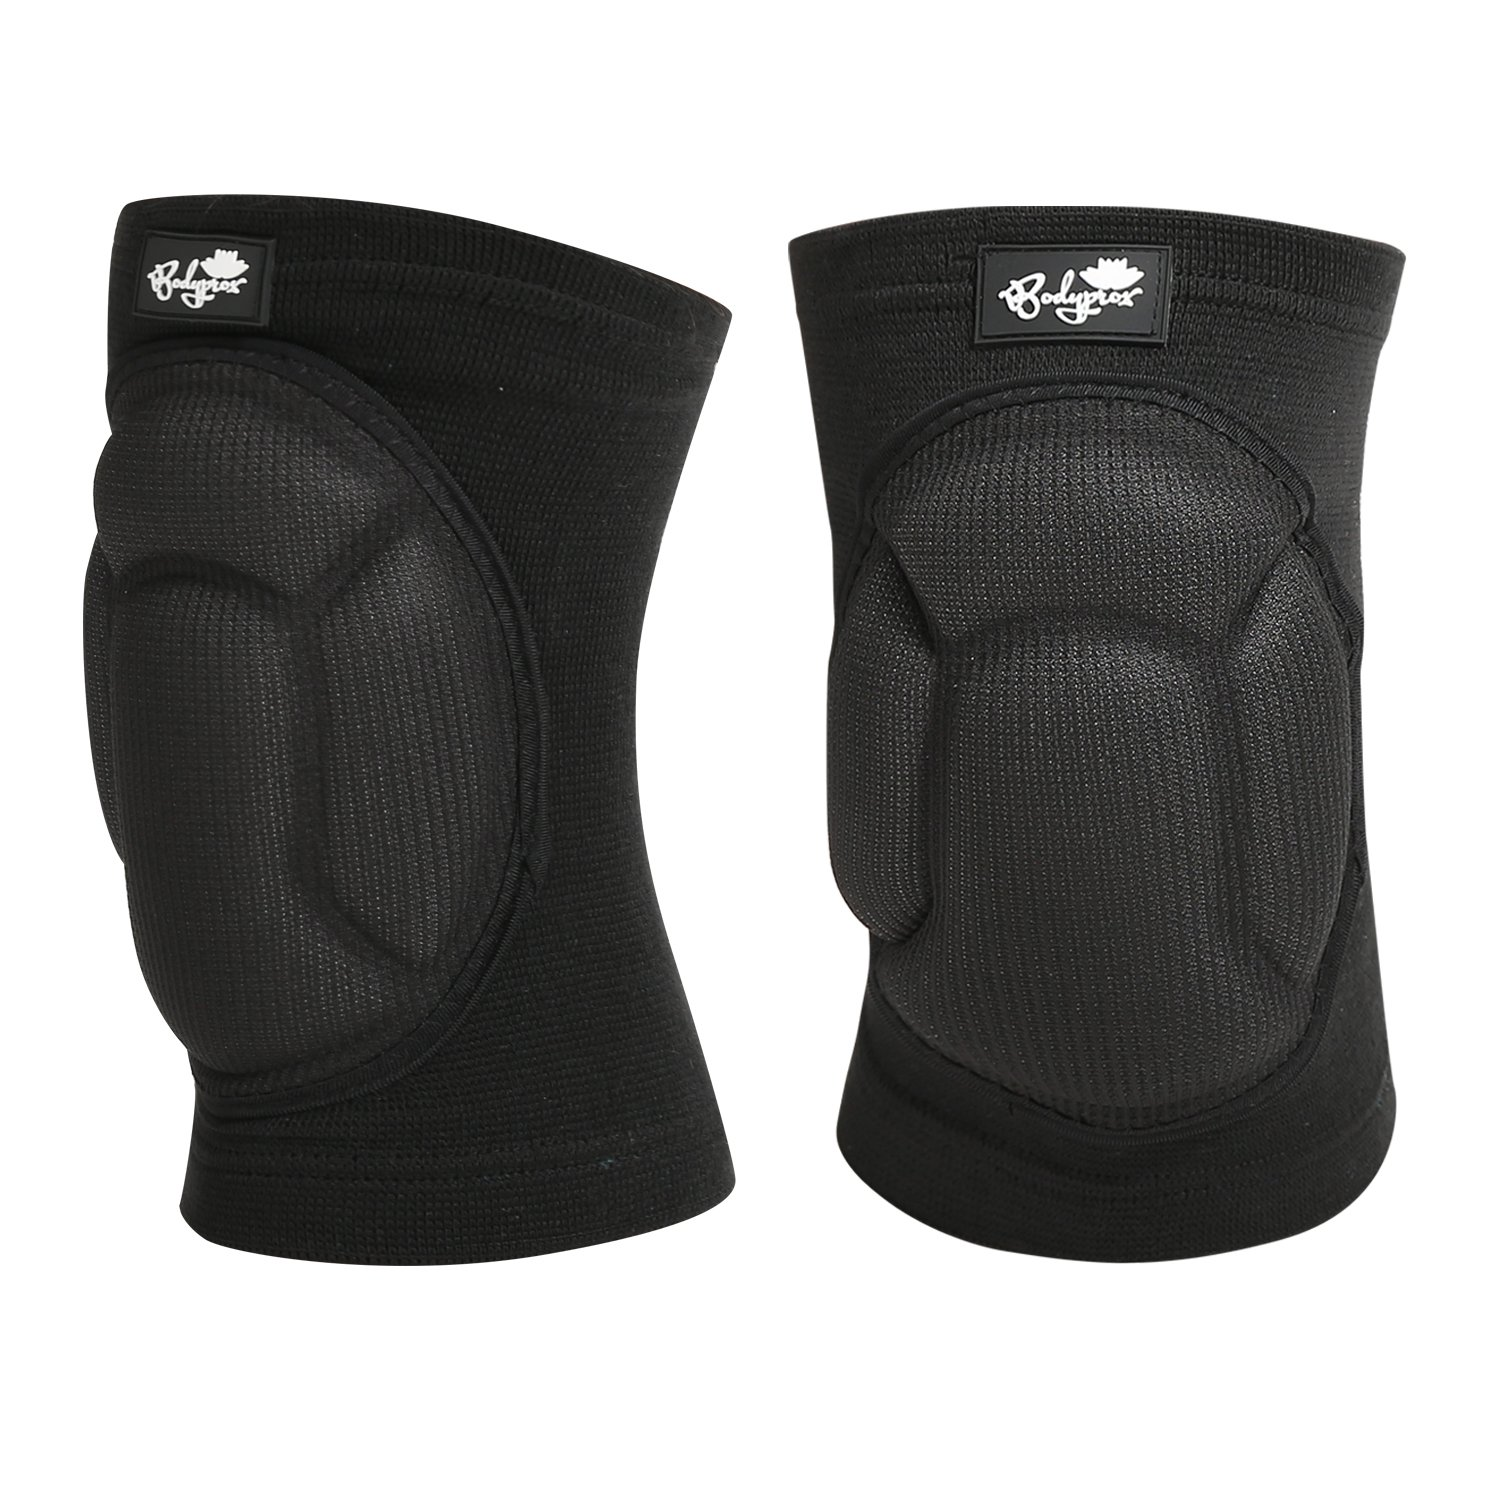 Bodyprox Protective Knee Pad